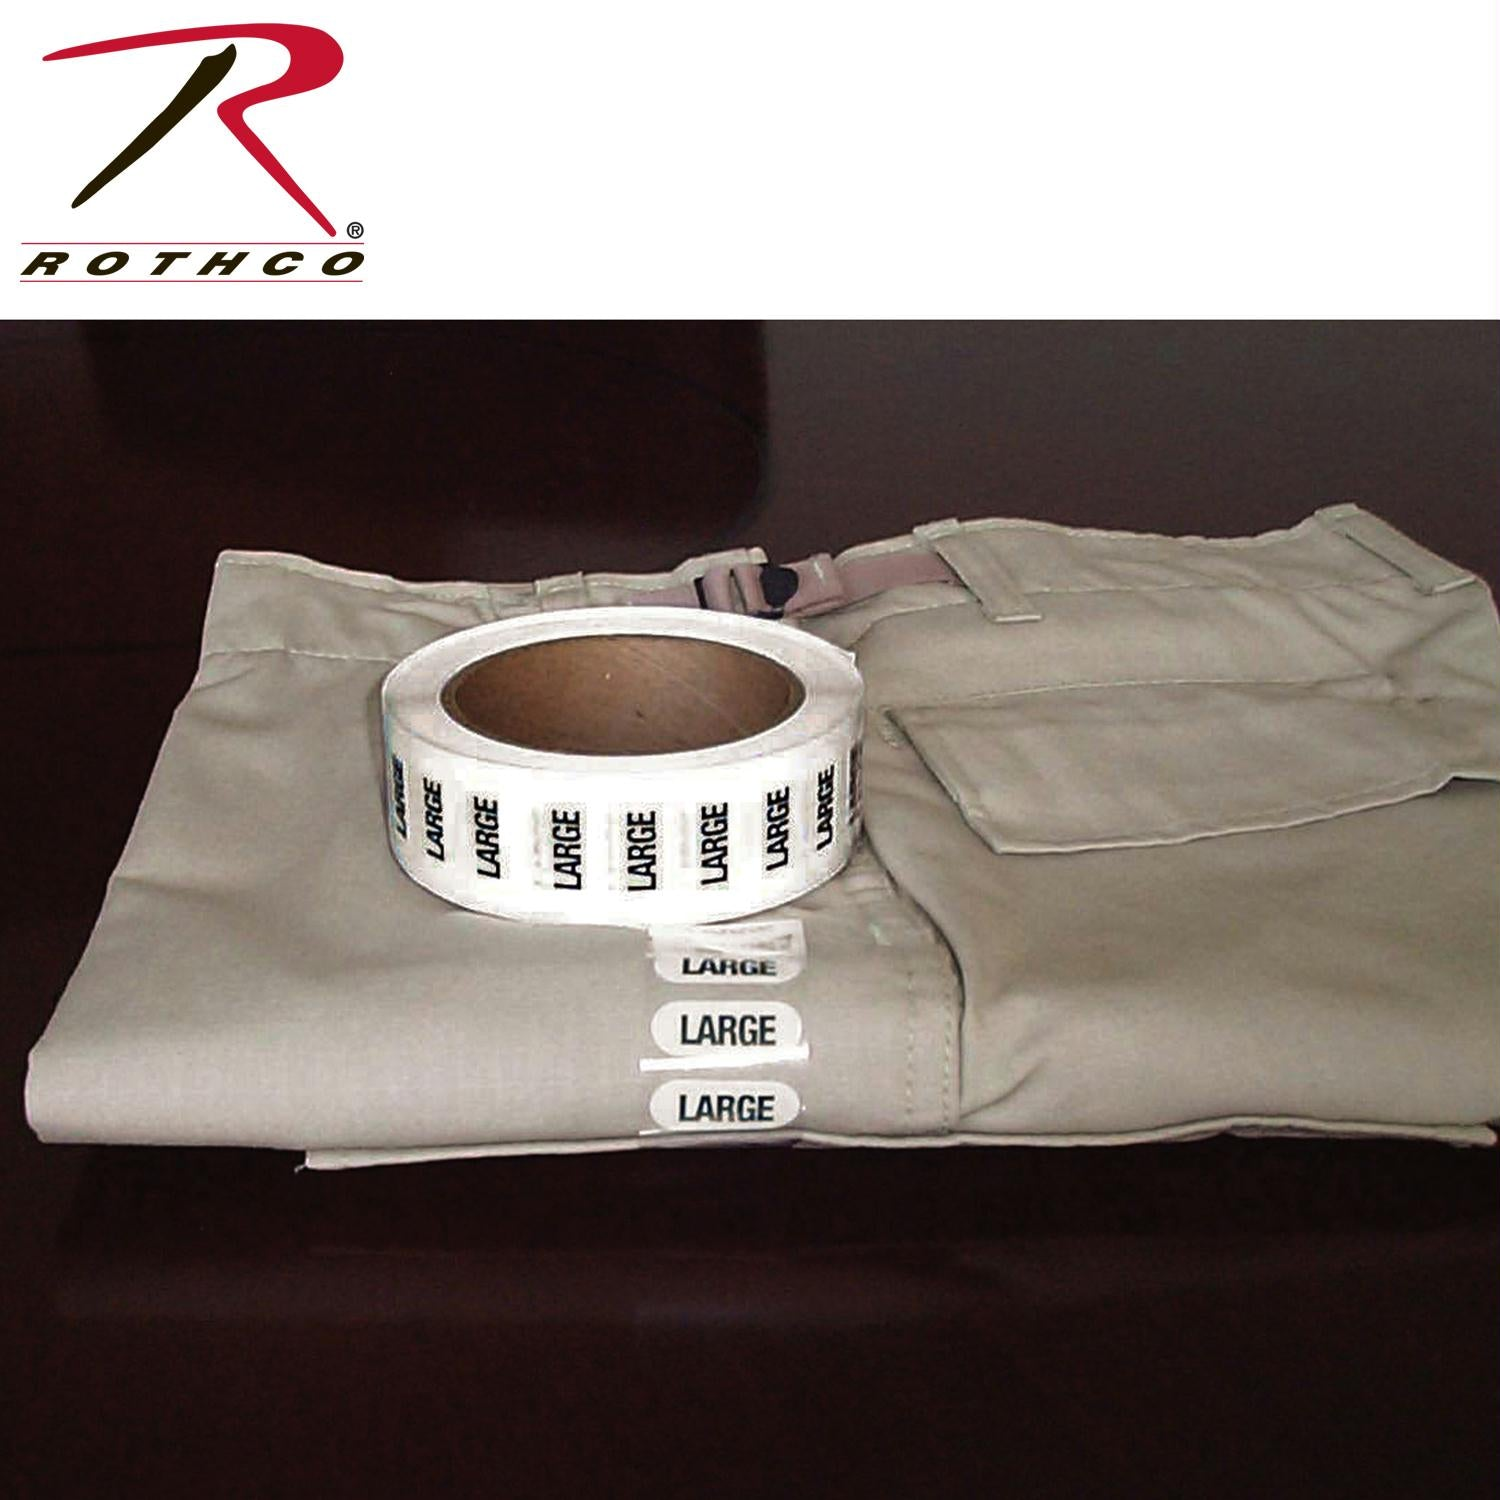 Rothco Size Strips - 2XL